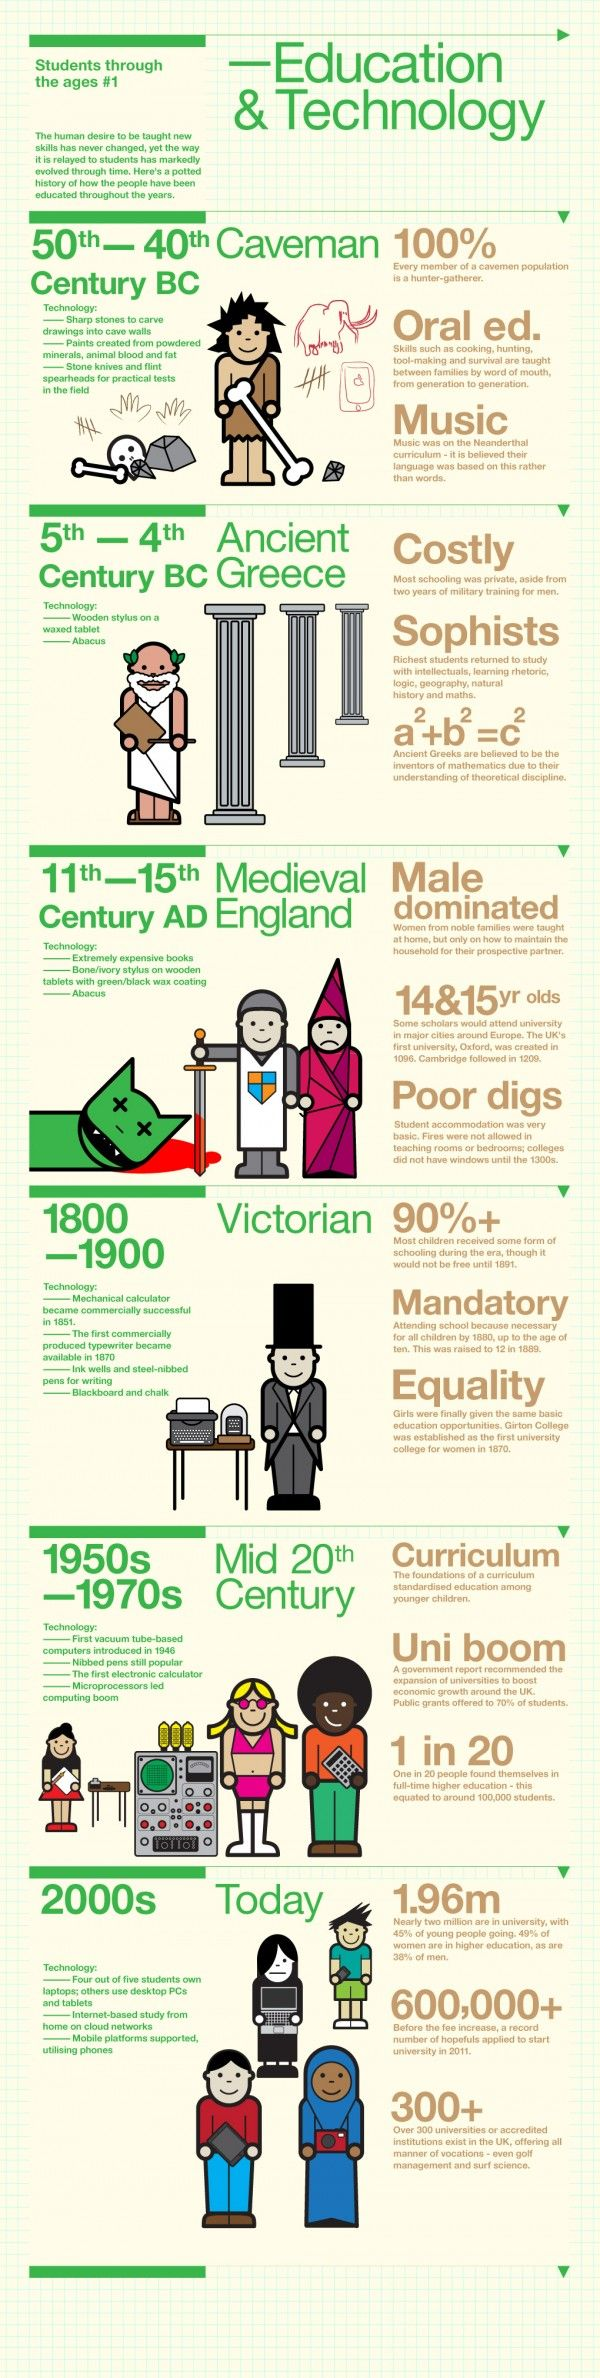 #infographic education